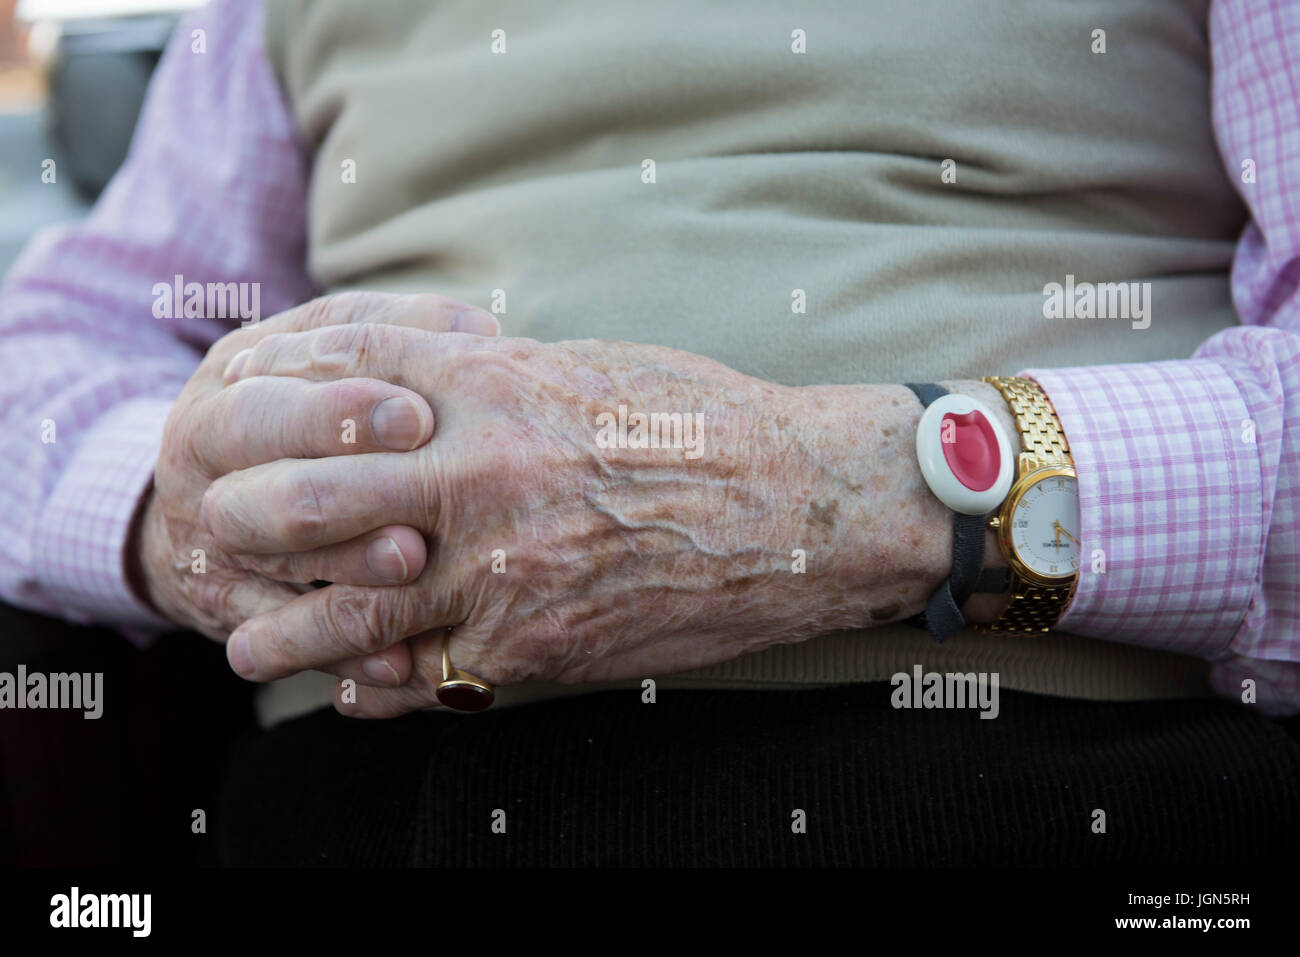 A vulnerable old age pensioner wears a panic alarm wristband. - Stock Image